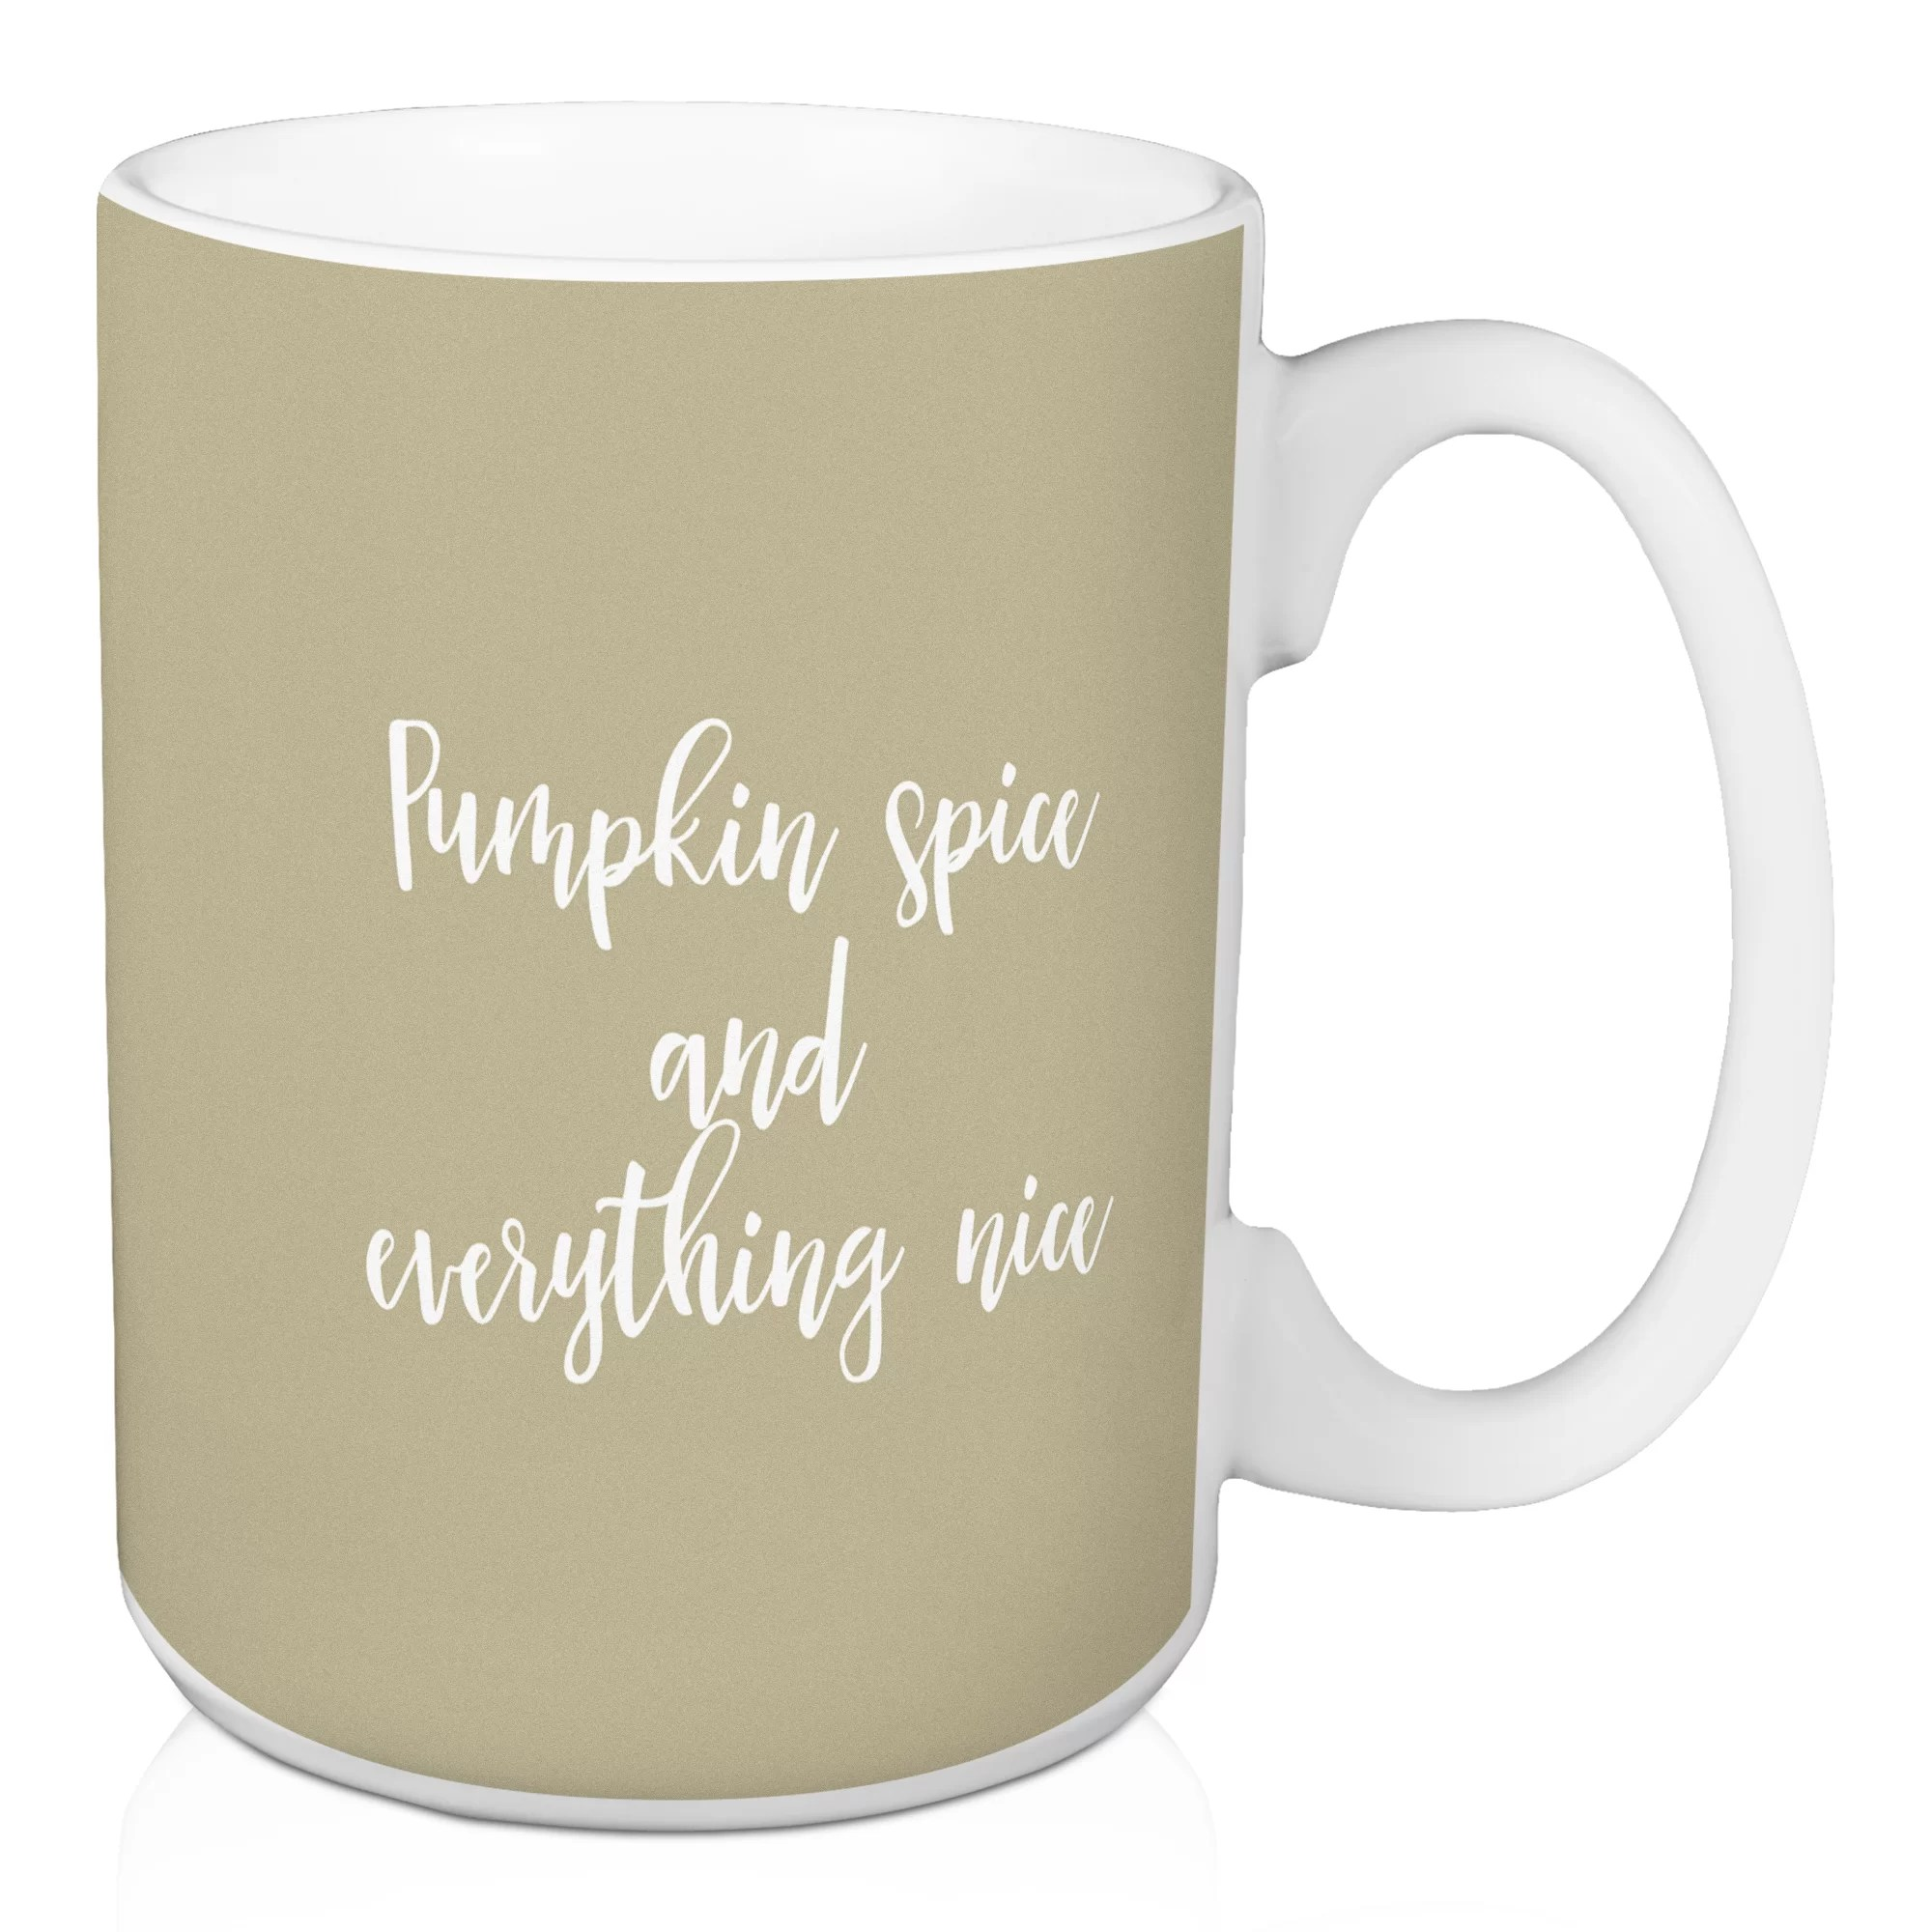 Where To Buy Nice Coffee Mugs Napper Pumpkin Spice And Everything Nice Coffee Mug